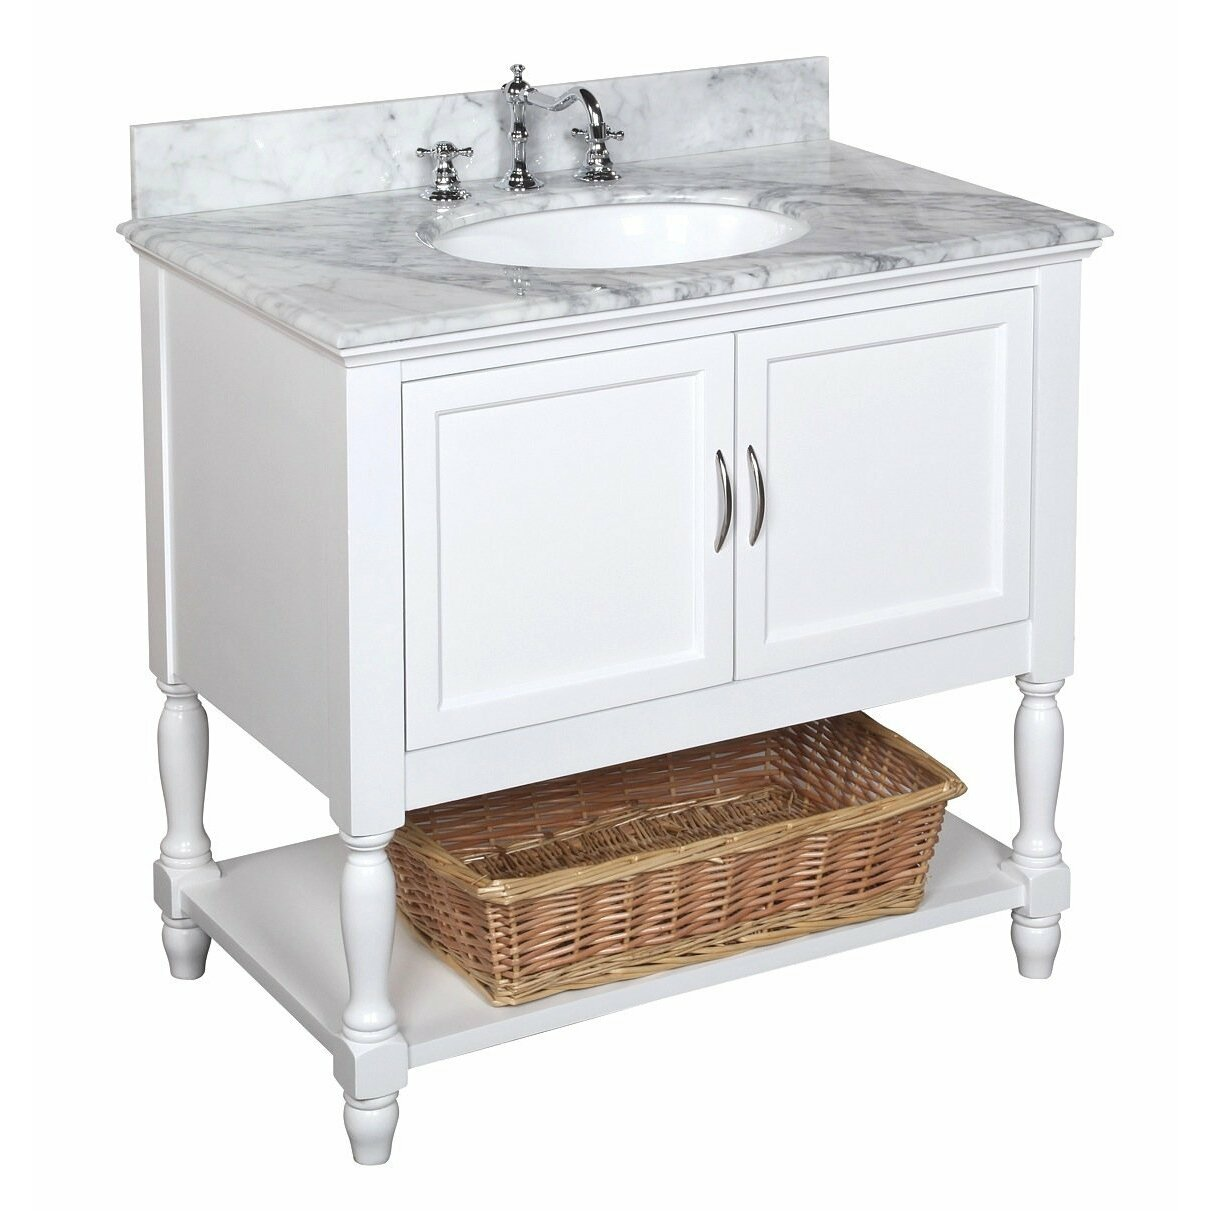 Kbc beverly 36 single bathroom vanity set reviews wayfair for Single bathroom vanity